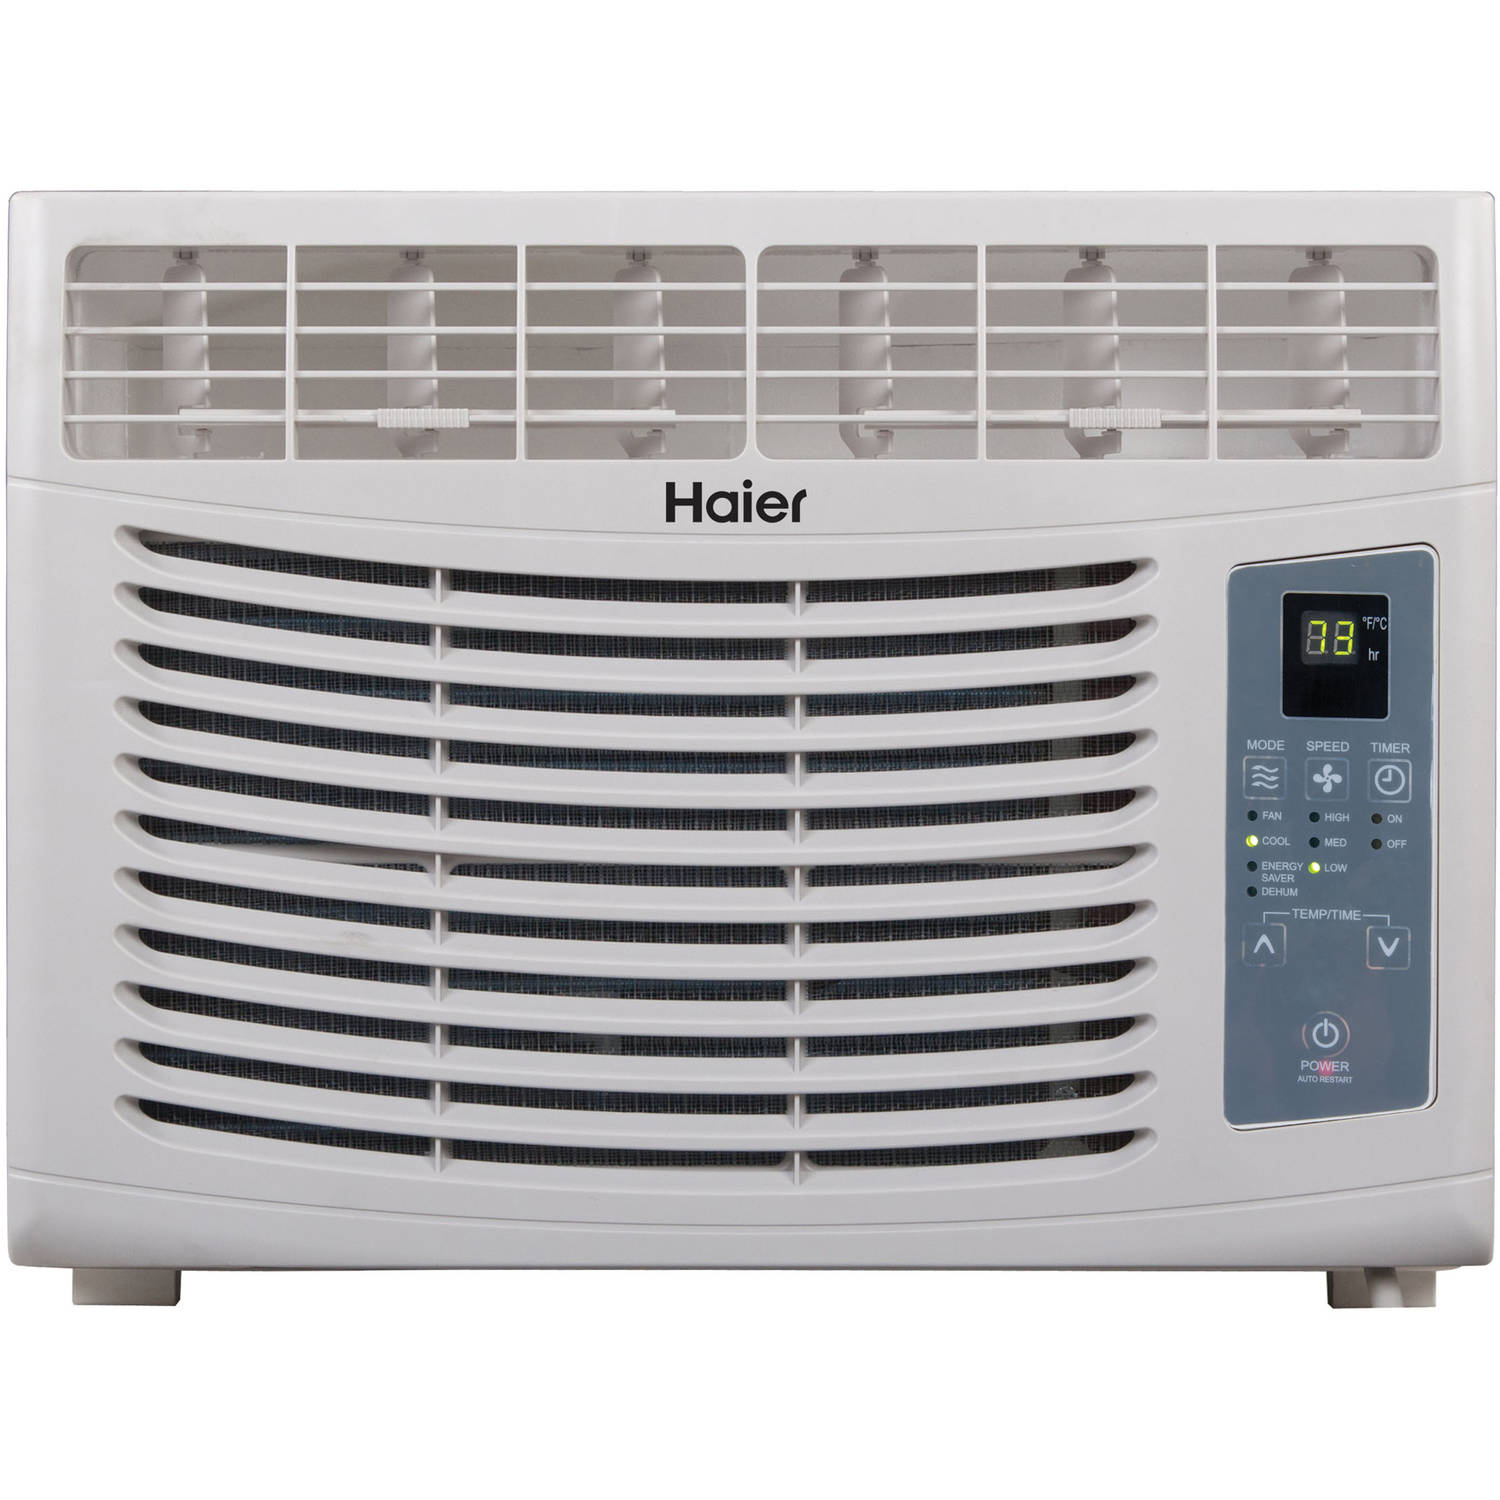 Haier Hwr05xcr L 5 000 Btu Window Air Conditioner With